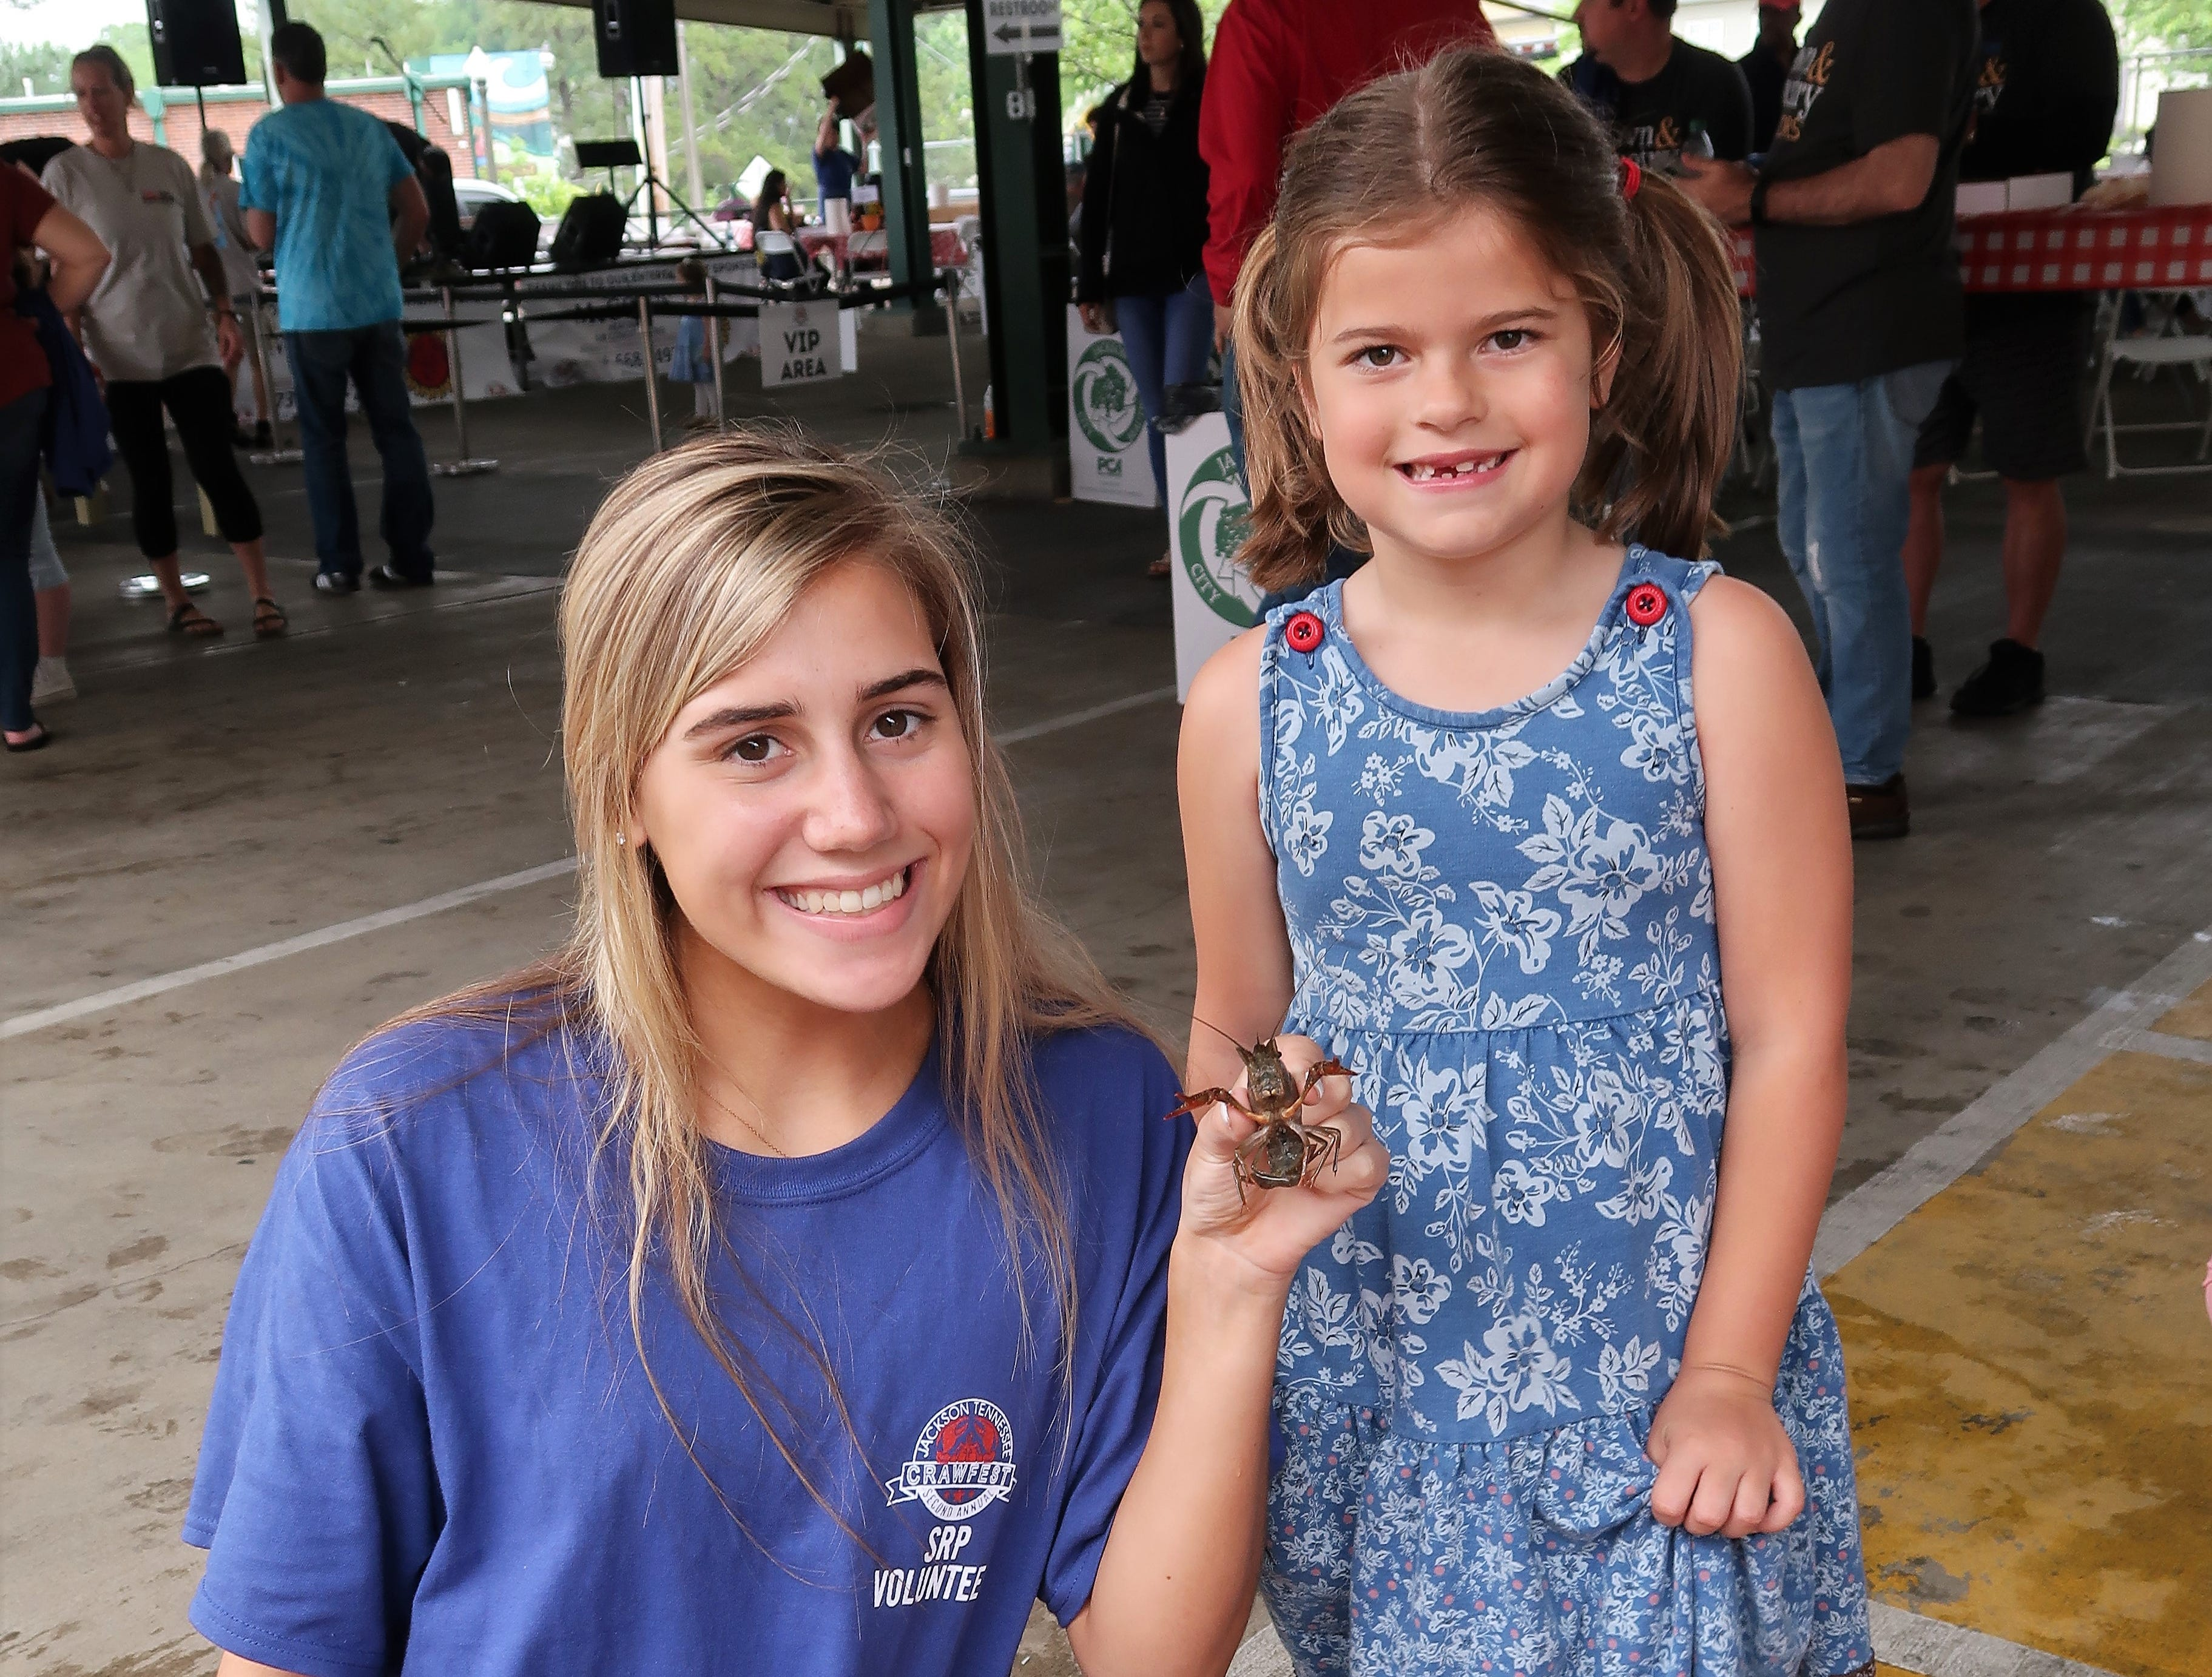 A volunteer and a child pose with a crawfish at the Second Annual Crawfest fundraiser for the Scarlet Rope Project at the West Tennessee Farmer's Market in Jackson on May 4, 2019.